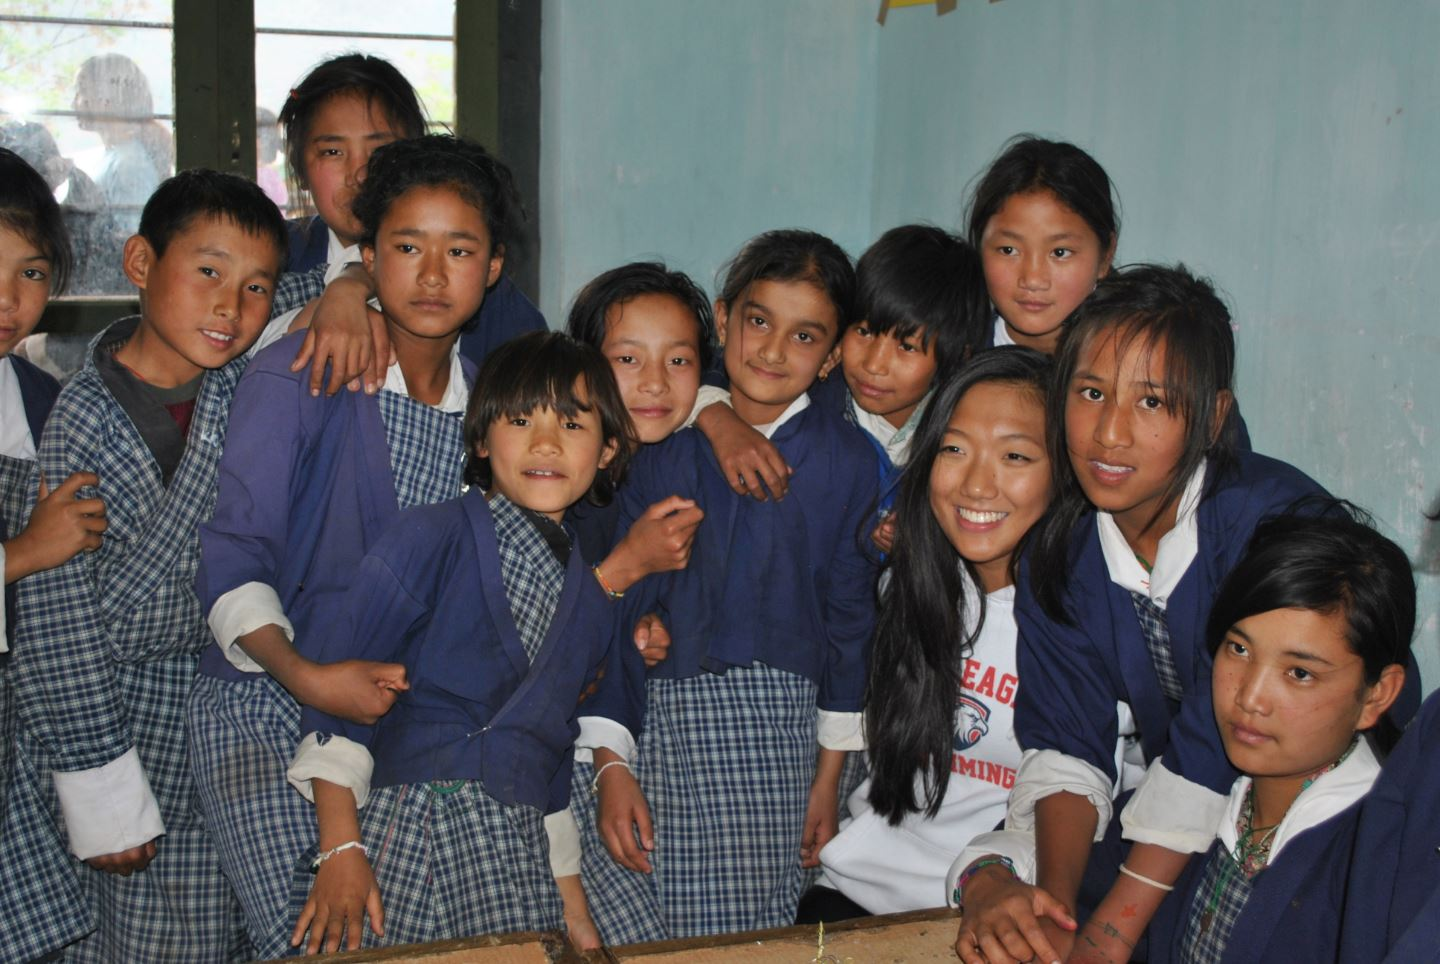 The Service Club At Sas Will Continue To Help Provide Resources Read Bhutan Which Makes Project Sustainable A Requirement Of Gold Award